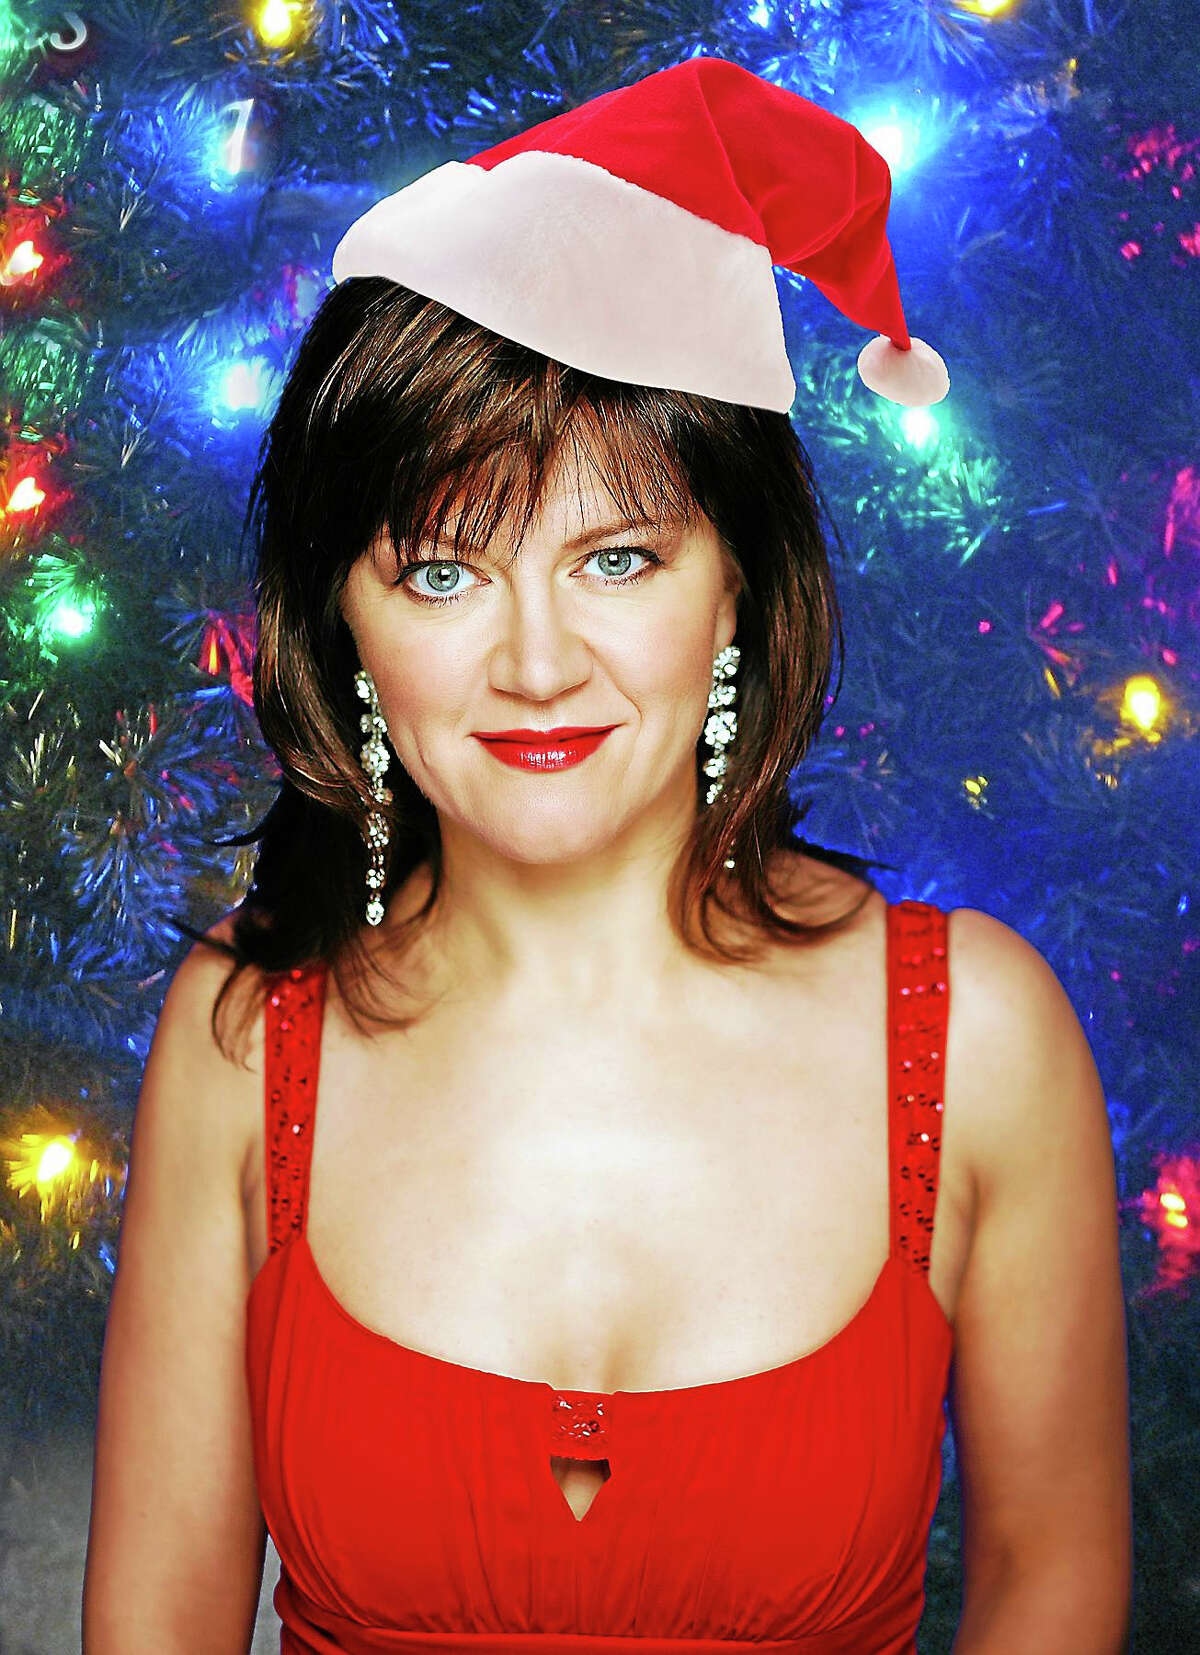 """Contributed photo """"Merry Christmas Darling: A Carpenters' Christmas"""", starring Michelle Berting Brett, is a concert show celebrating the biggest hits of one of the most successful recording acts of all time, and a full complement of their classic Christmas repertoire. Michelle and her band are set to perform two concerts at Nelson Hall in Cheshire on Thursday Dec. 3 at 2 p.m. and 7;30 p.m."""